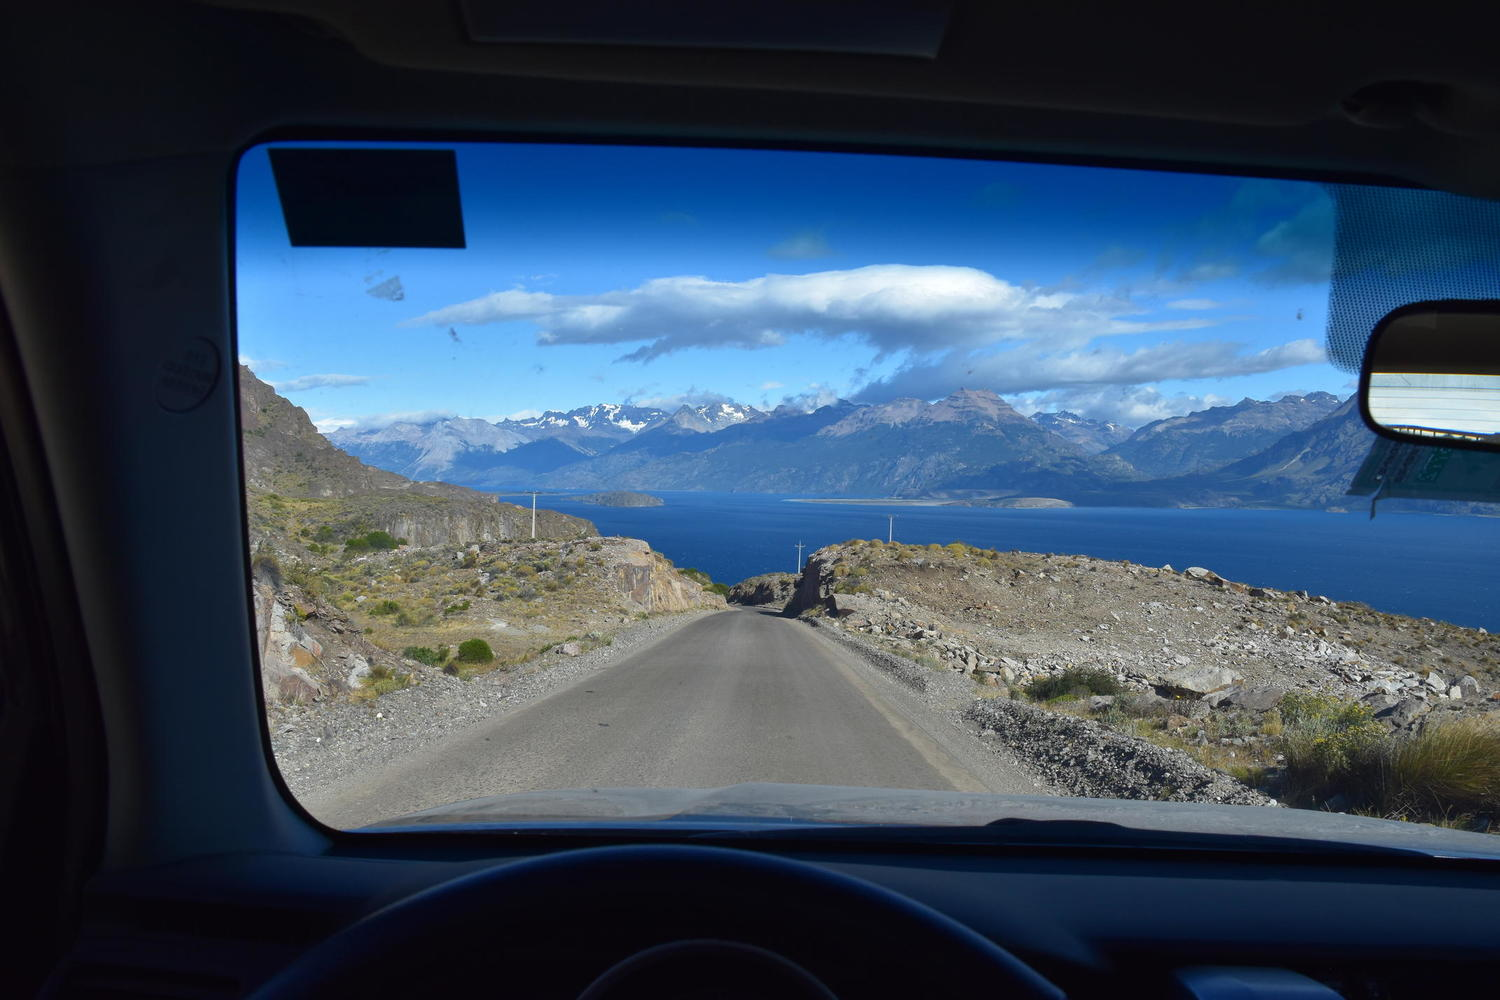 View from the drivers seat on the Carretera Austral